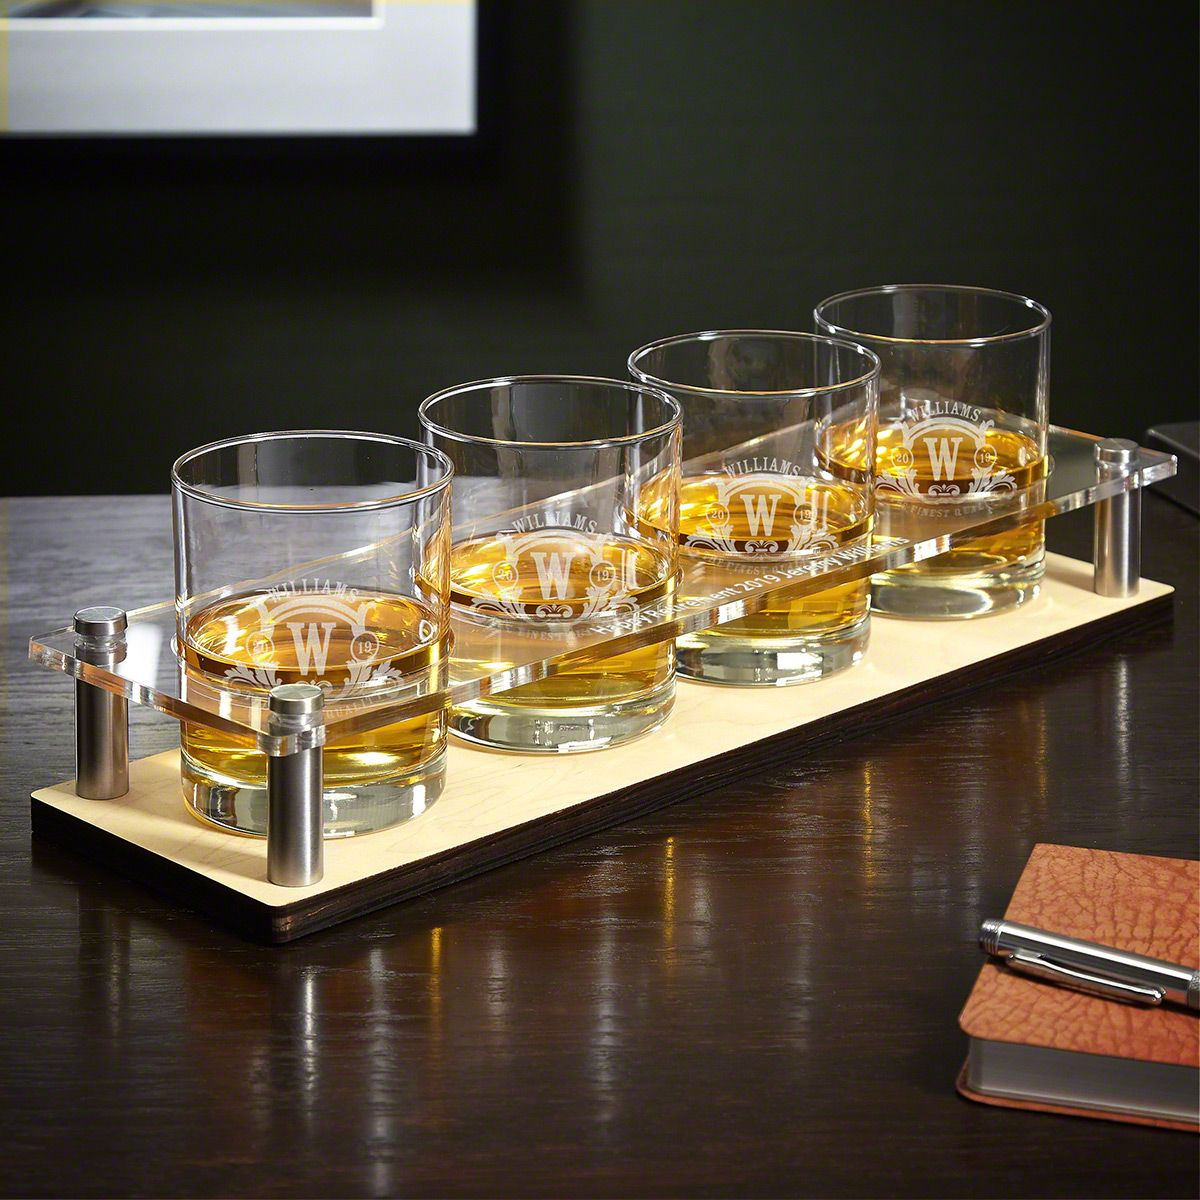 Westbrook Engraved Presentation Set with Cocktail Glasses 5 pc